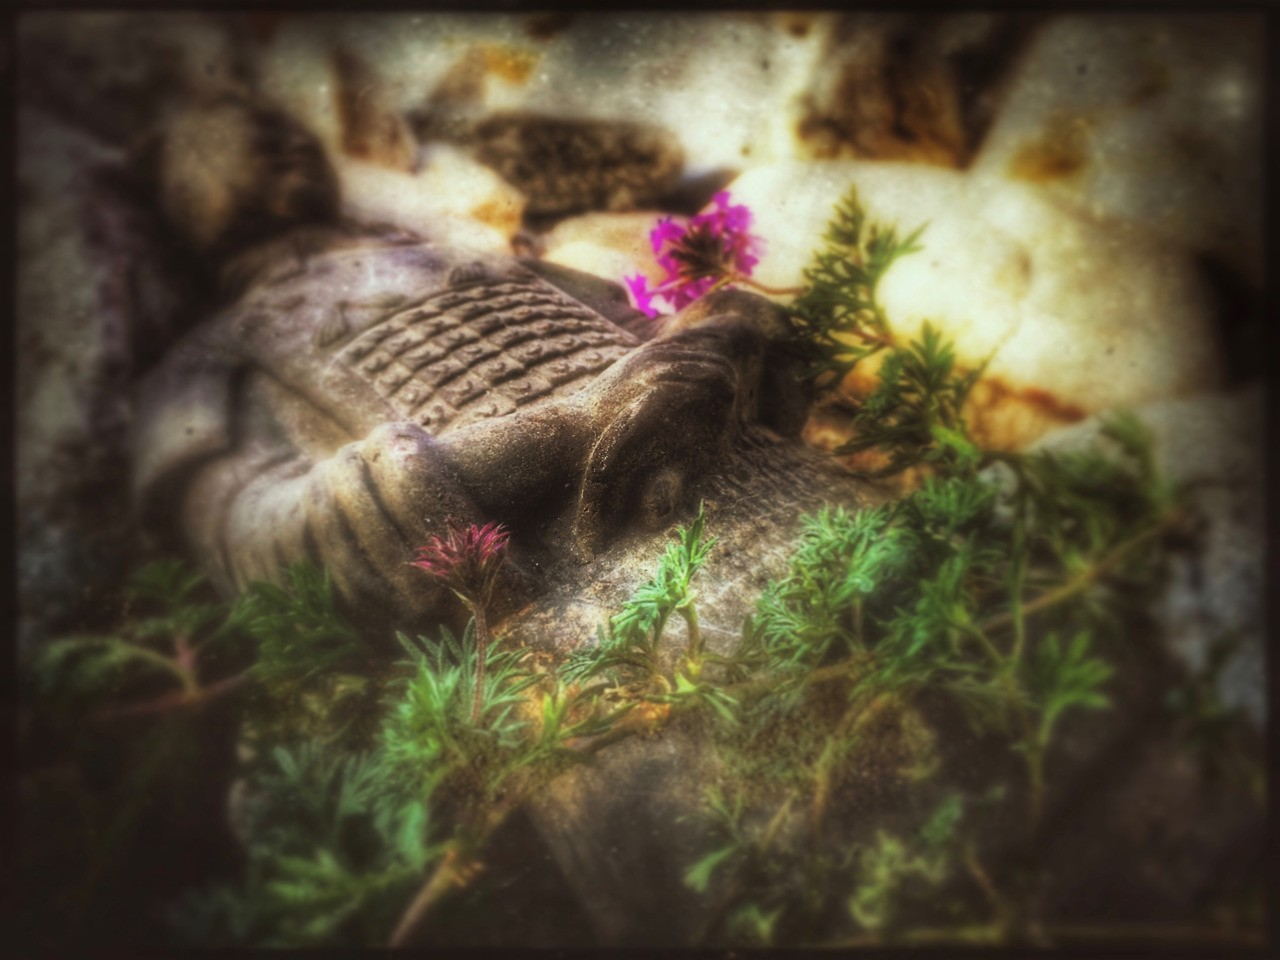 """As he tipped over, fell and broke his head off, I heard two things from behind me. My husband saying, """"At Least We Have The Other One In The Garage"""" and the dog snickering cause he was there when I broke that one last week. . . #backyard #terracottawarriors #yardart #verbena #rock #saturated #flowers #textures #apple #iphone #iphone6splus #iphonography #ipad #snapseed #hipstamatic #deserthotsprings"""